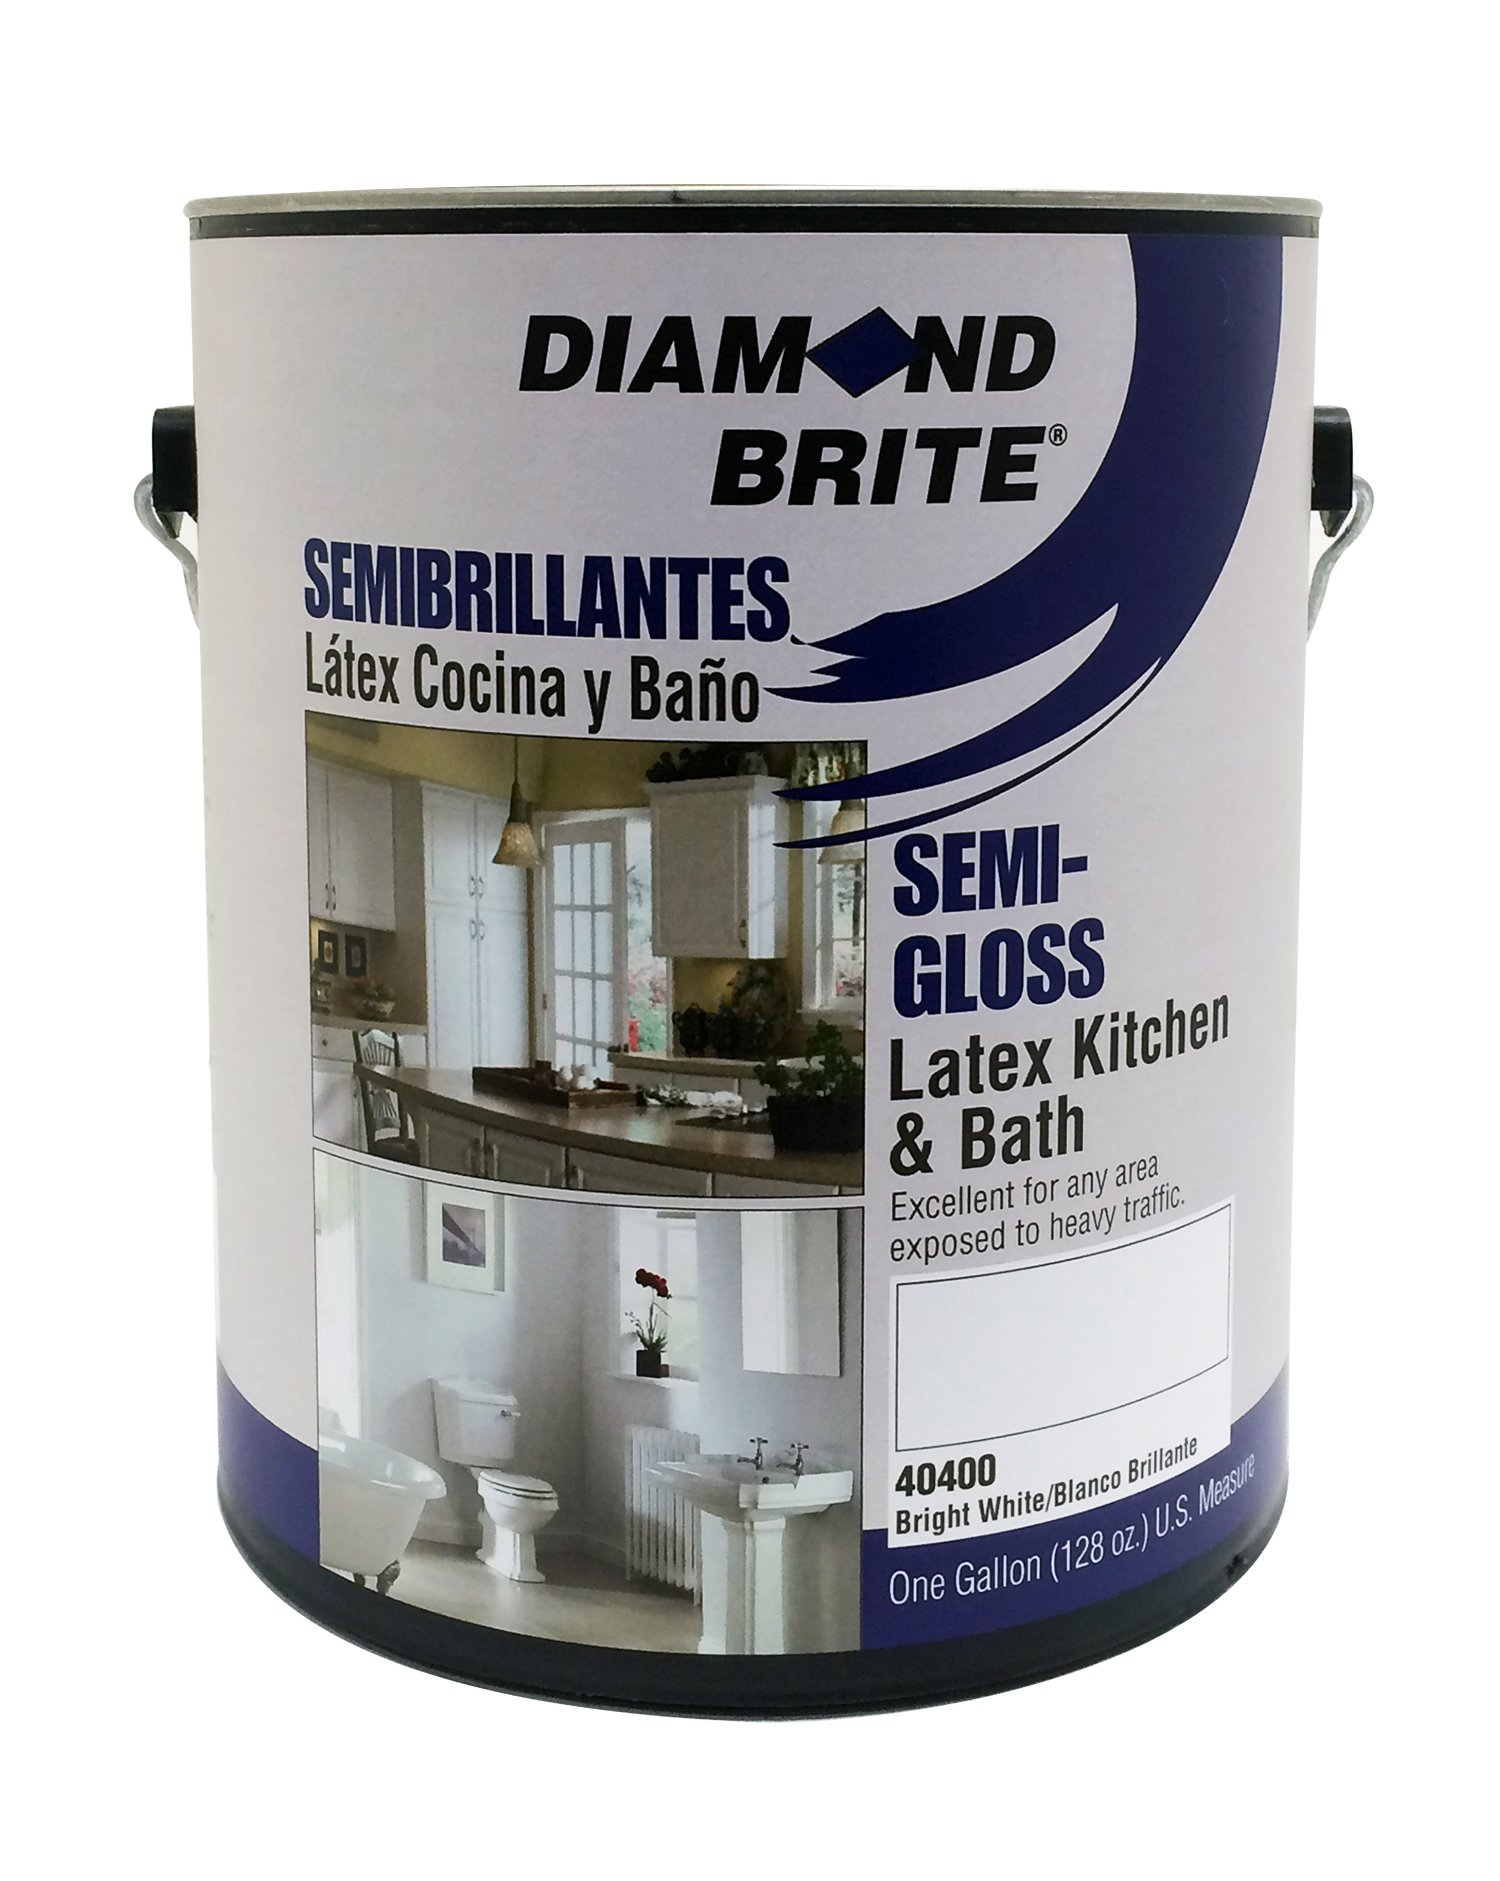 Diamond Brite Paint 40400 1-Gallon Kichen and Bath with Mildew Protection Semi Gloss Latex Paint White by Diamond Brite Paint (Image #1)